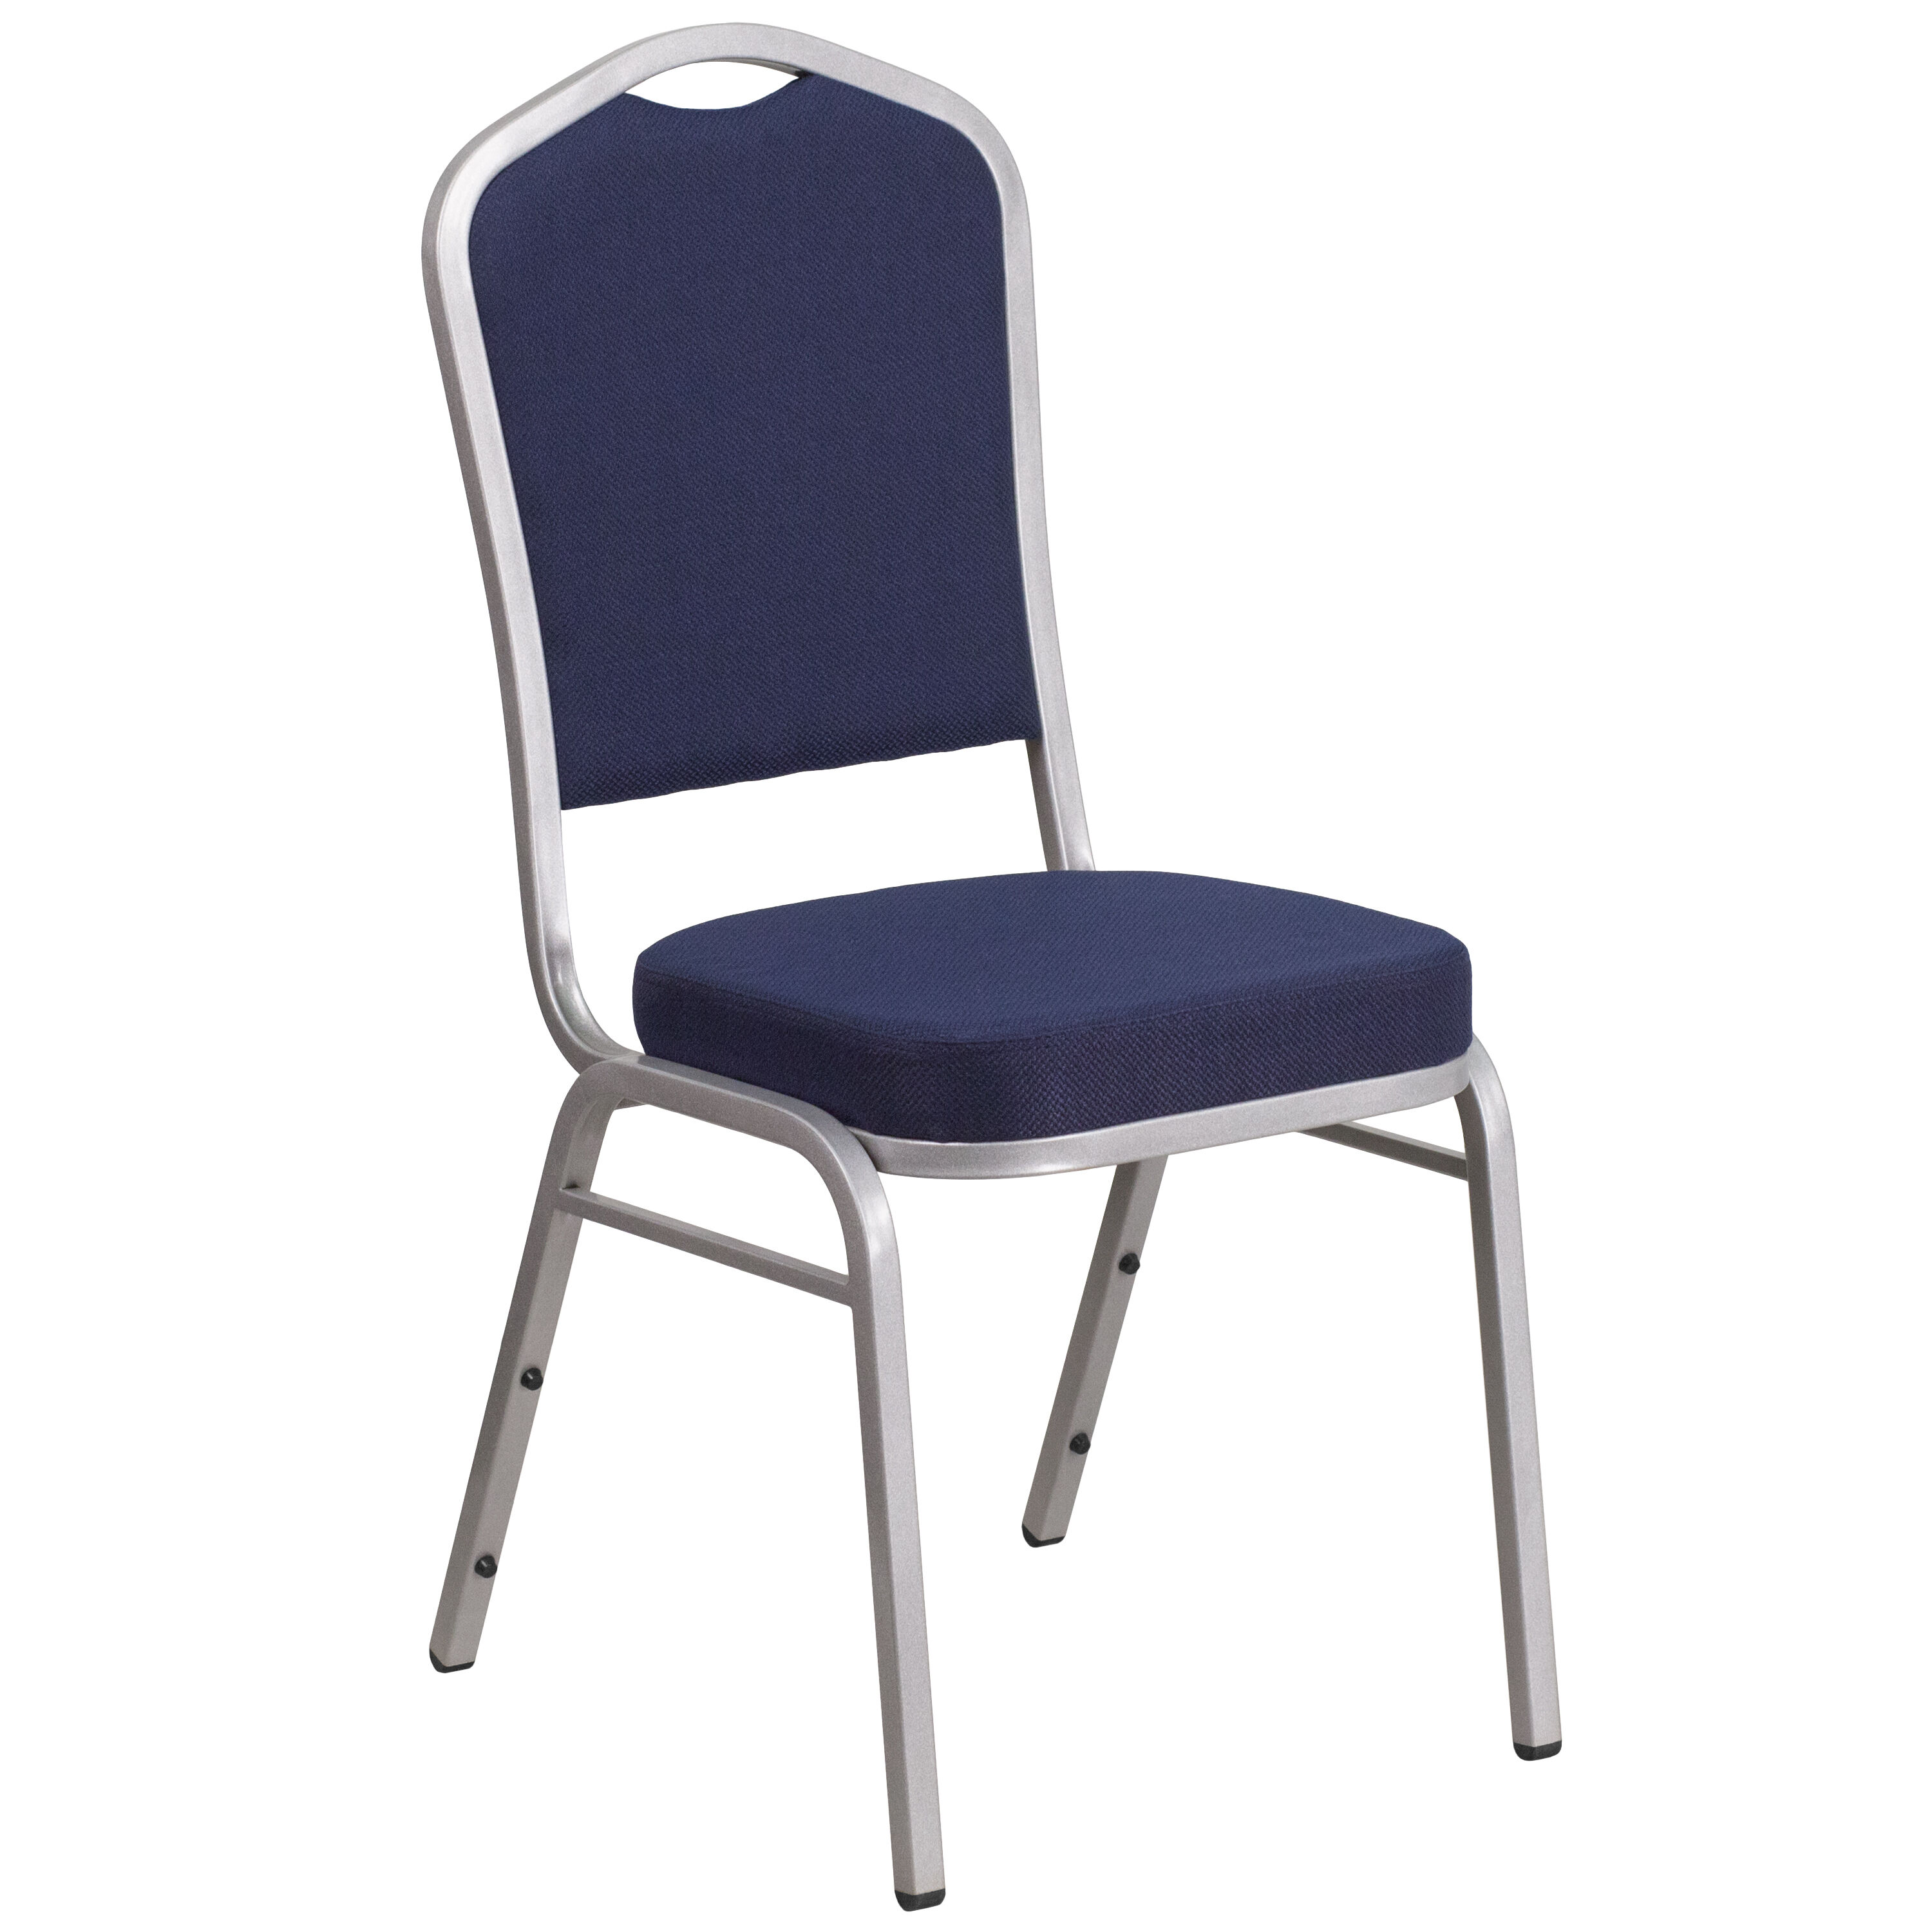 stackable chairs for less fully adjustable office chair navy fabric banquet fd c01 s 2 gg stackchairs4less